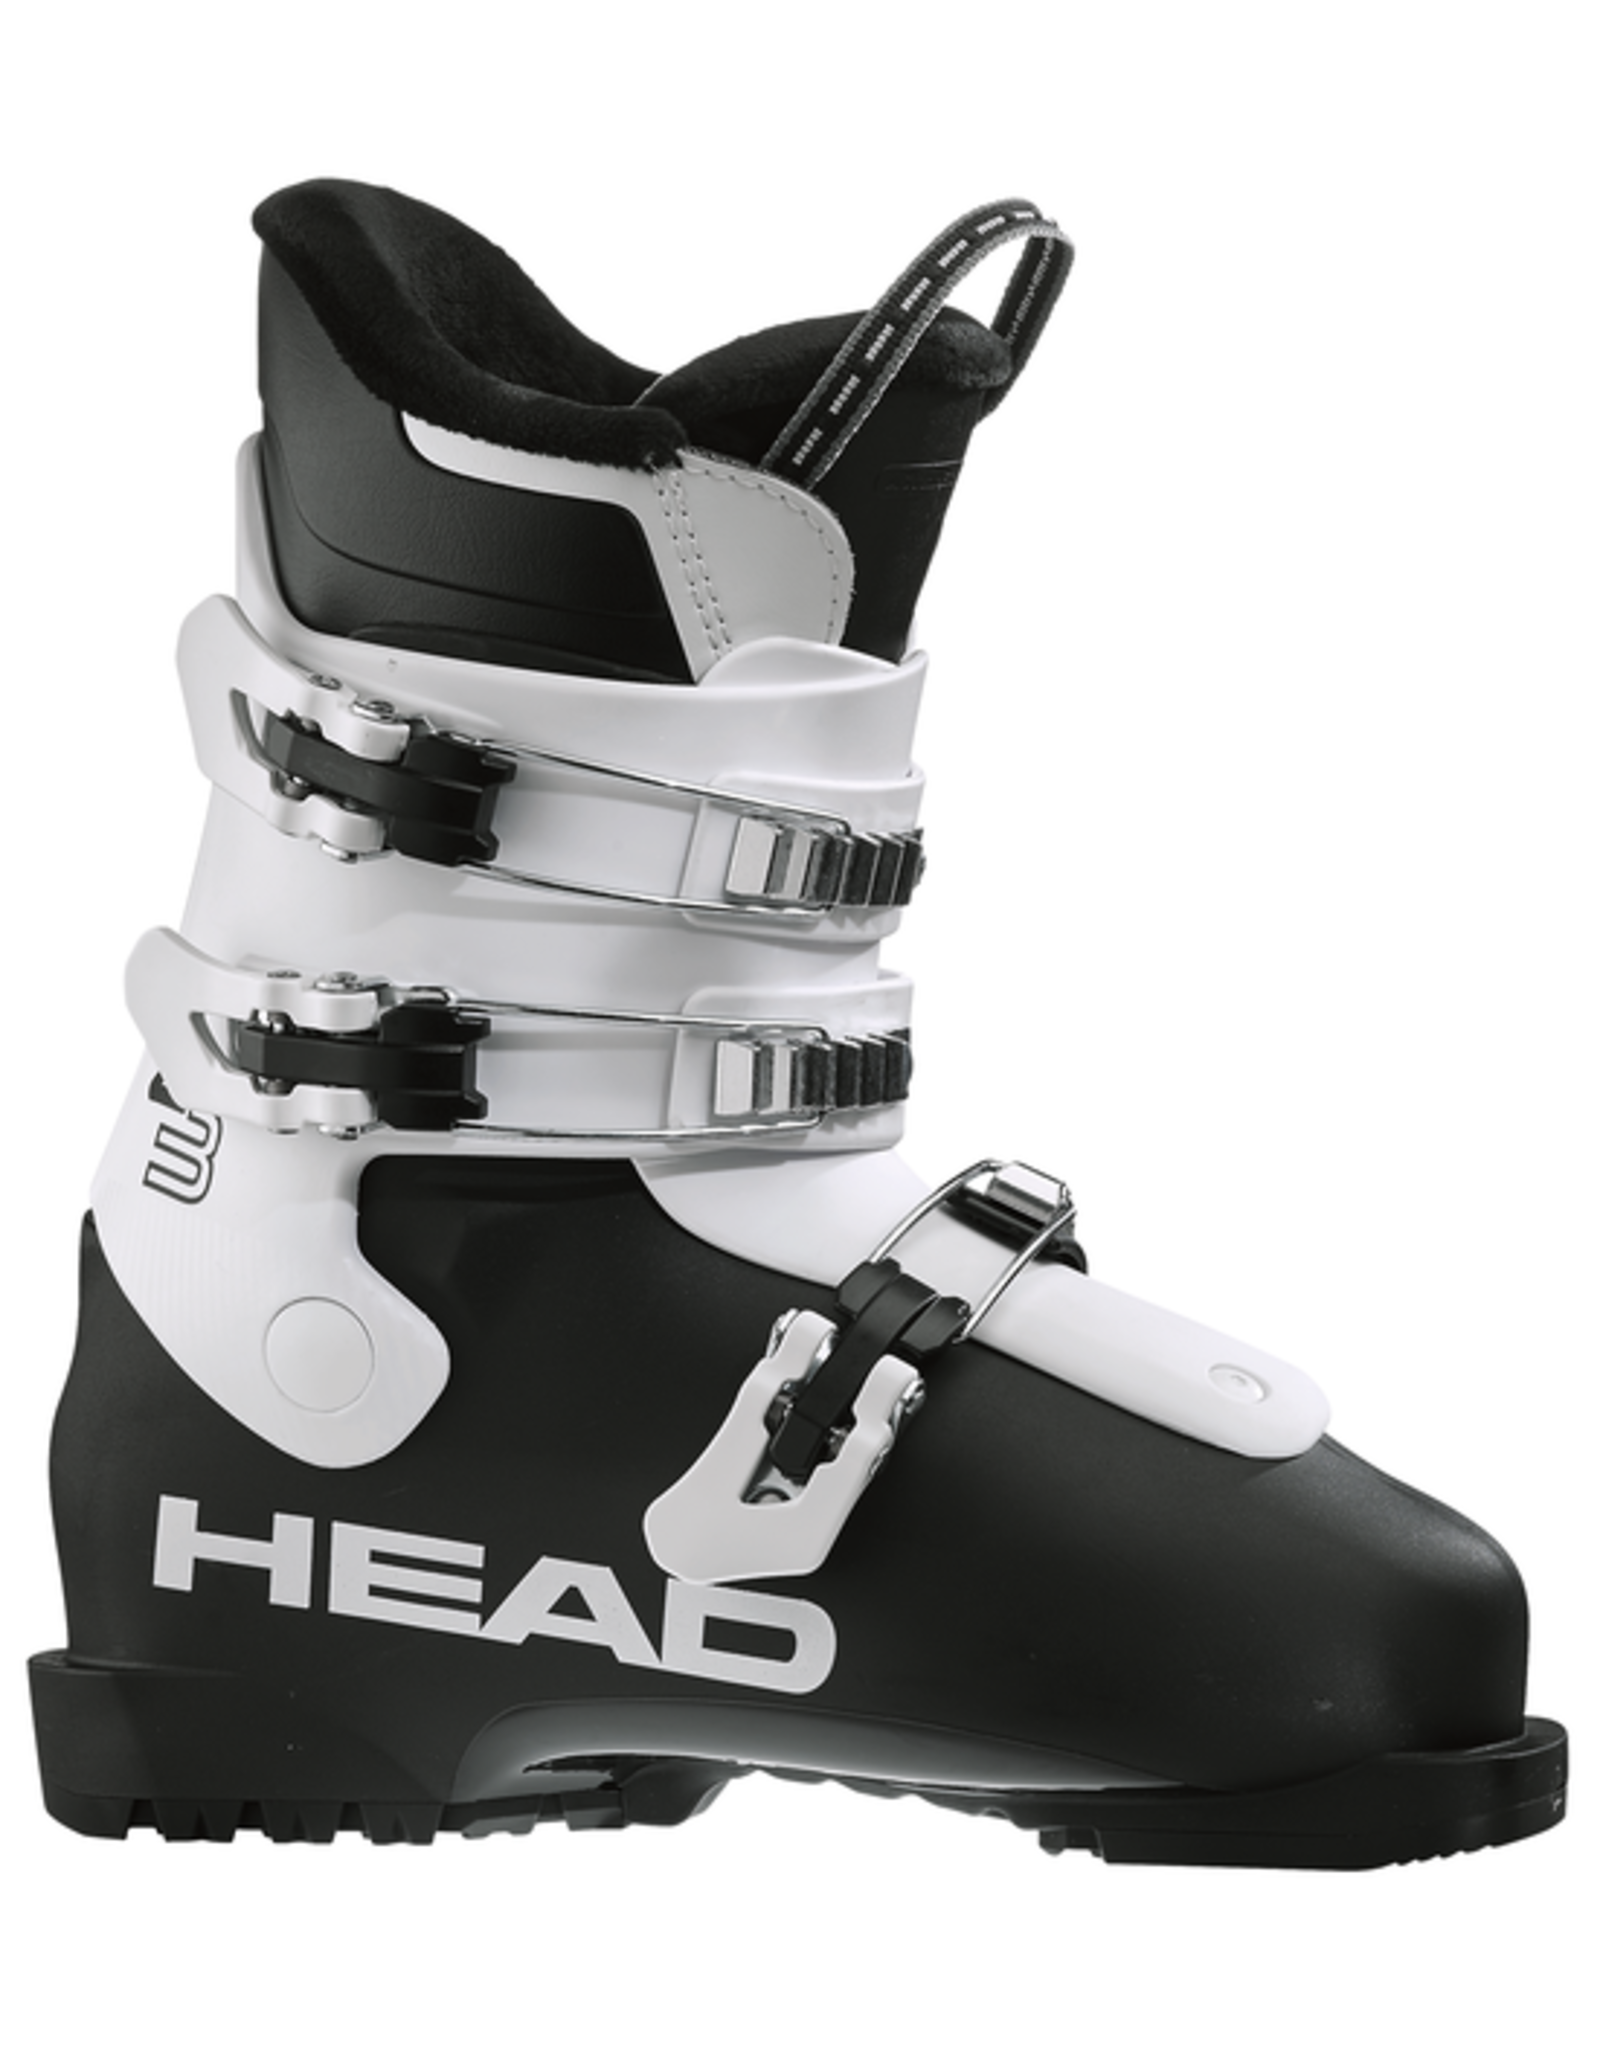 HEAD HEAD Z3 BLACK/WHITE BOTTE ALPIN JR 20